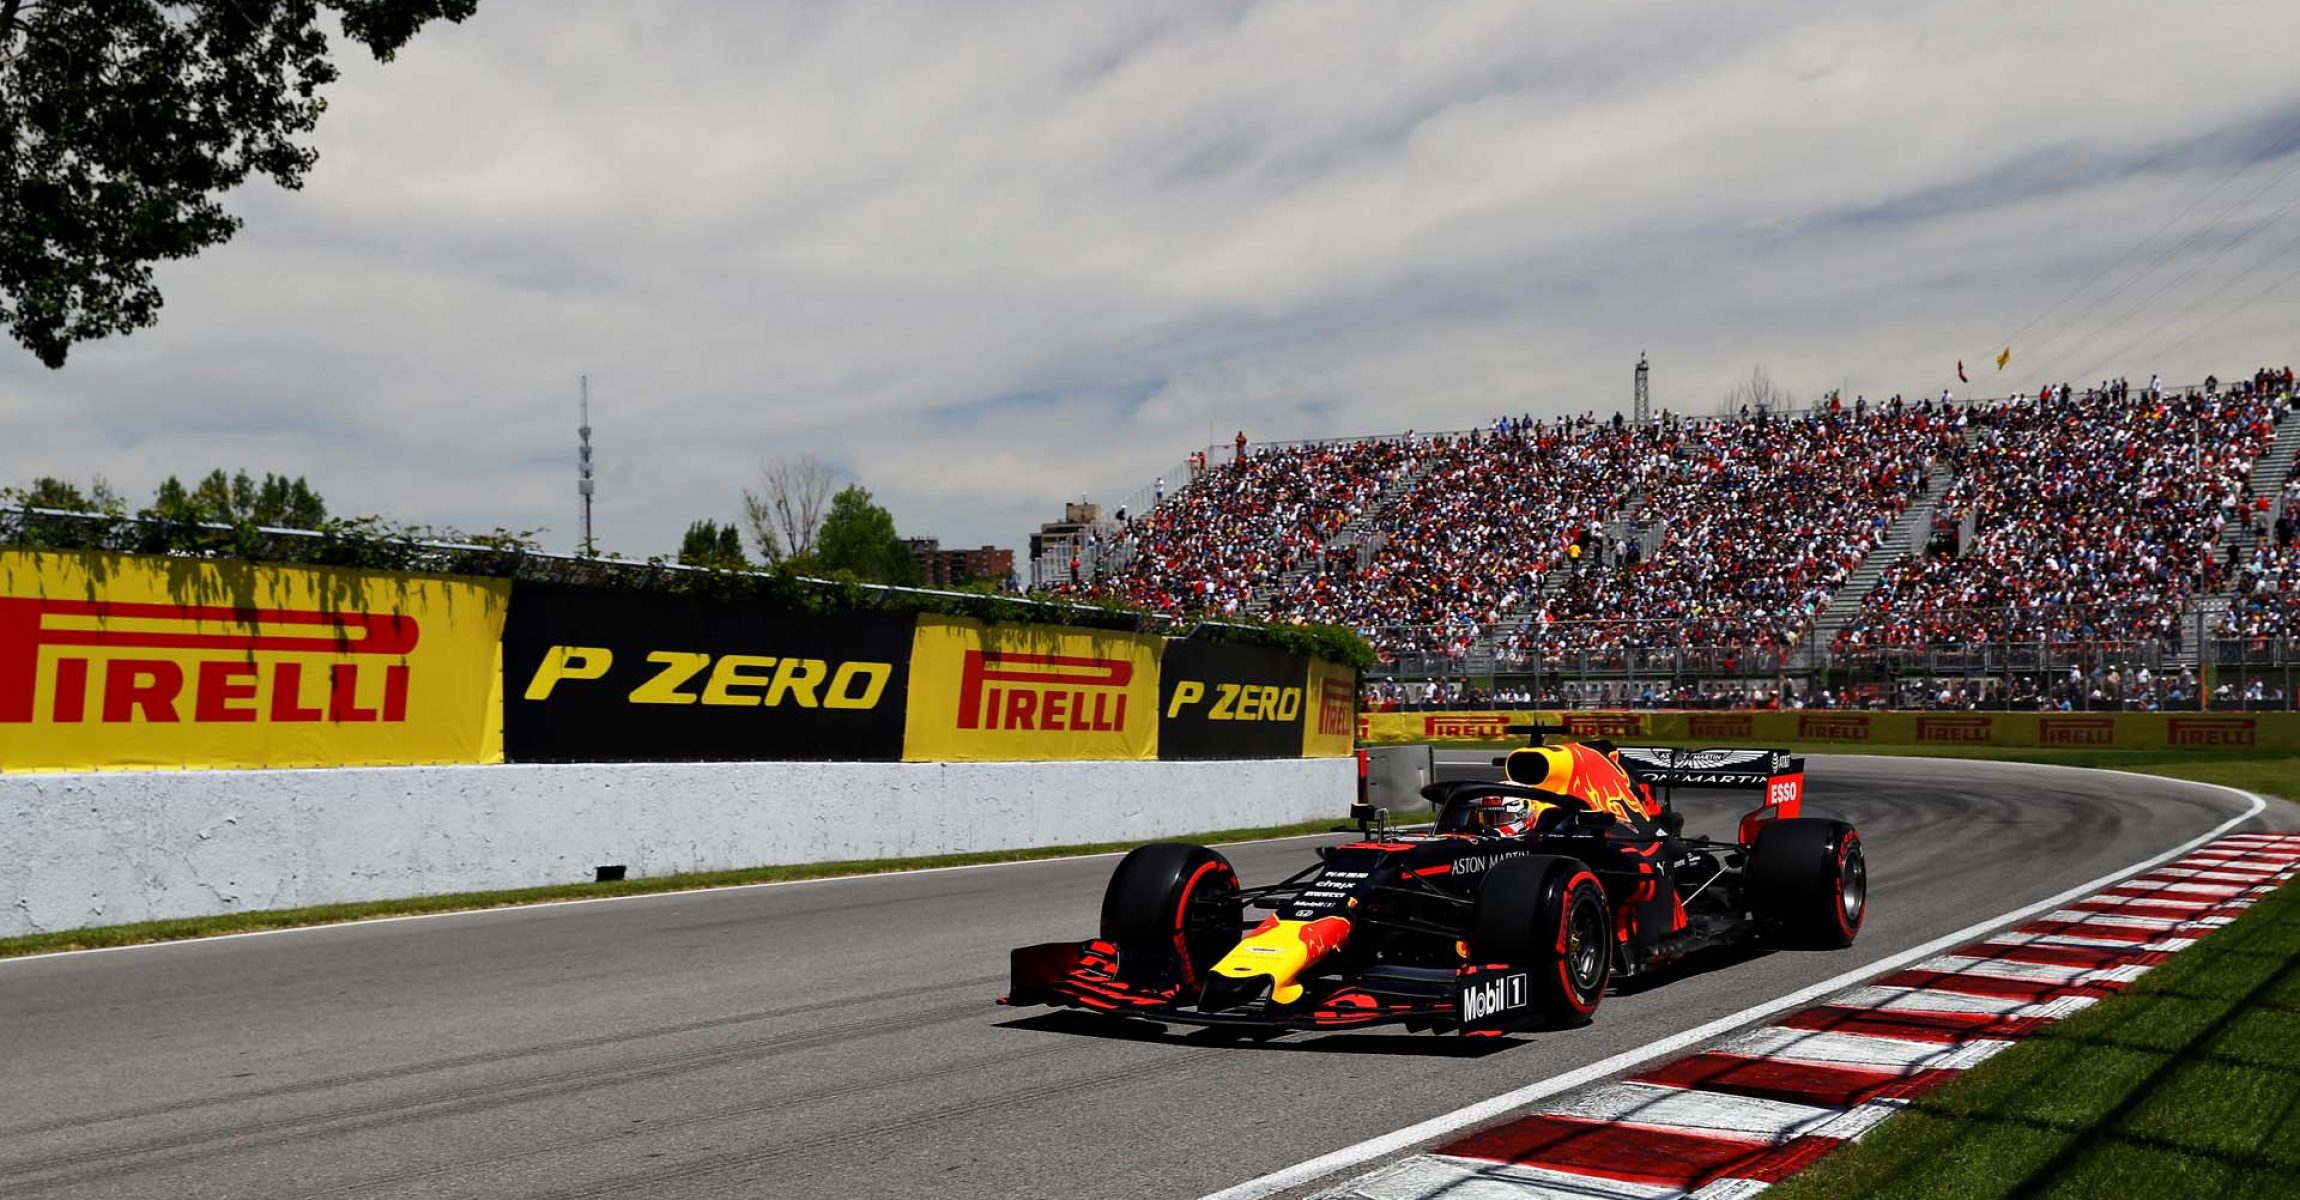 MONTREAL, QUEBEC - JUNE 08: Max Verstappen of the Netherlands driving the (33) Aston Martin Red Bull Racing RB15 on track during qualifying for the F1 Grand Prix of Canada at Circuit Gilles Villeneuve on June 08, 2019 in Montreal, Canada. (Photo by Mark Thompson/Getty Images) // Getty Images / Red Bull Content Pool  // AP-1ZK9W8EZD2111 // Usage for editorial use only // Please go to www.redbullcontentpool.com for further information. //